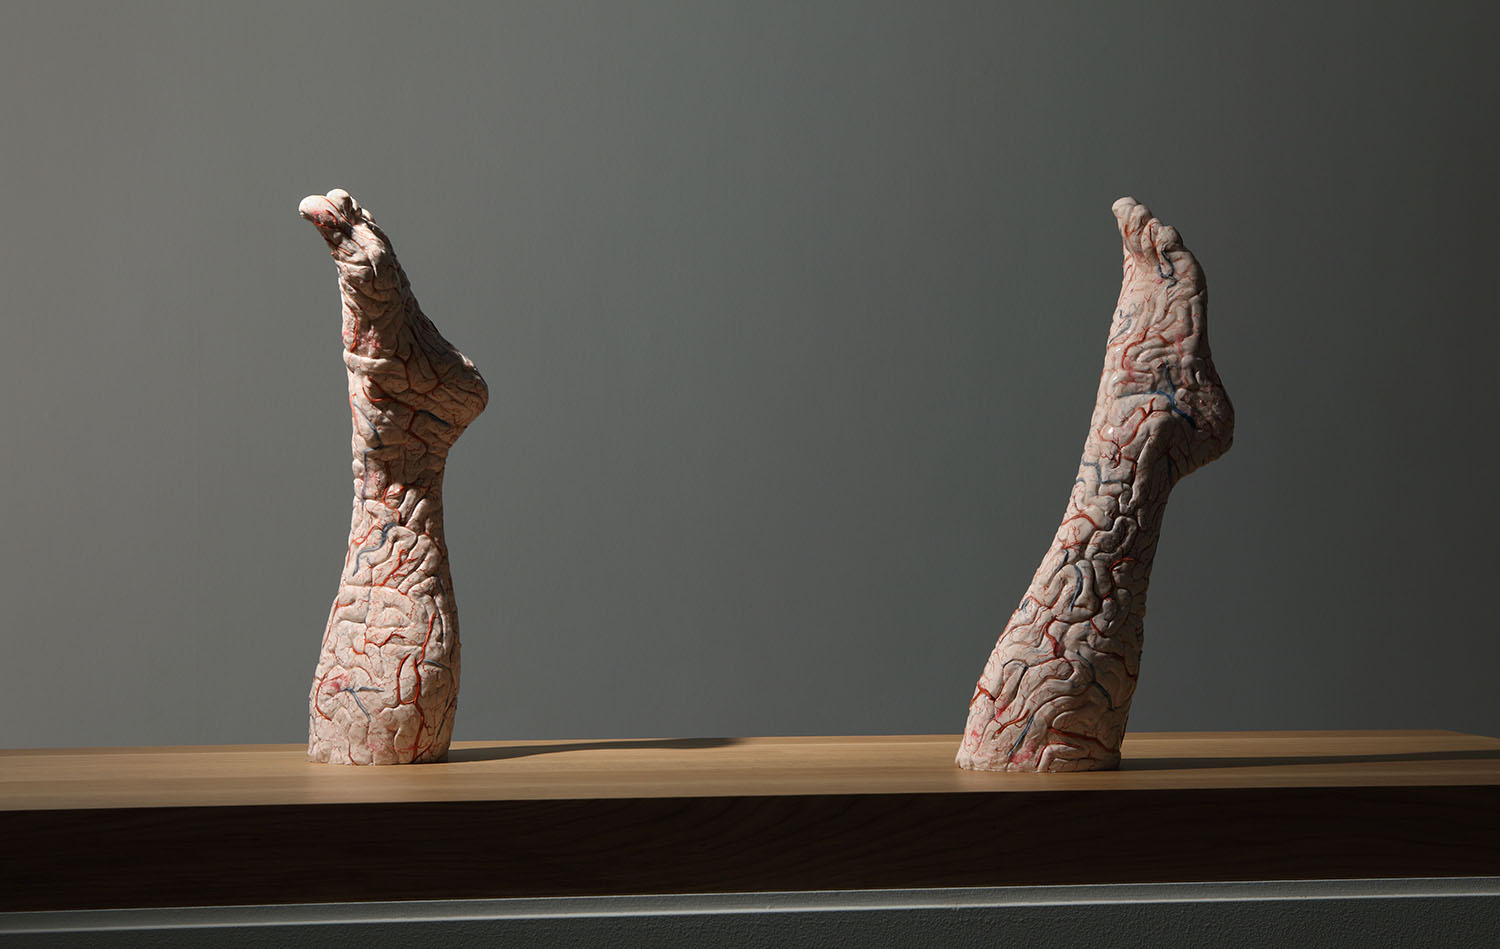 Jan Fabre, Brain Legs, 2010, silicon, paint 52 x 16 x 14 cm (been links); 49,5 x 15 x 14 cm (been rechts) Photo Attilio Maranzano © Angelos bvba